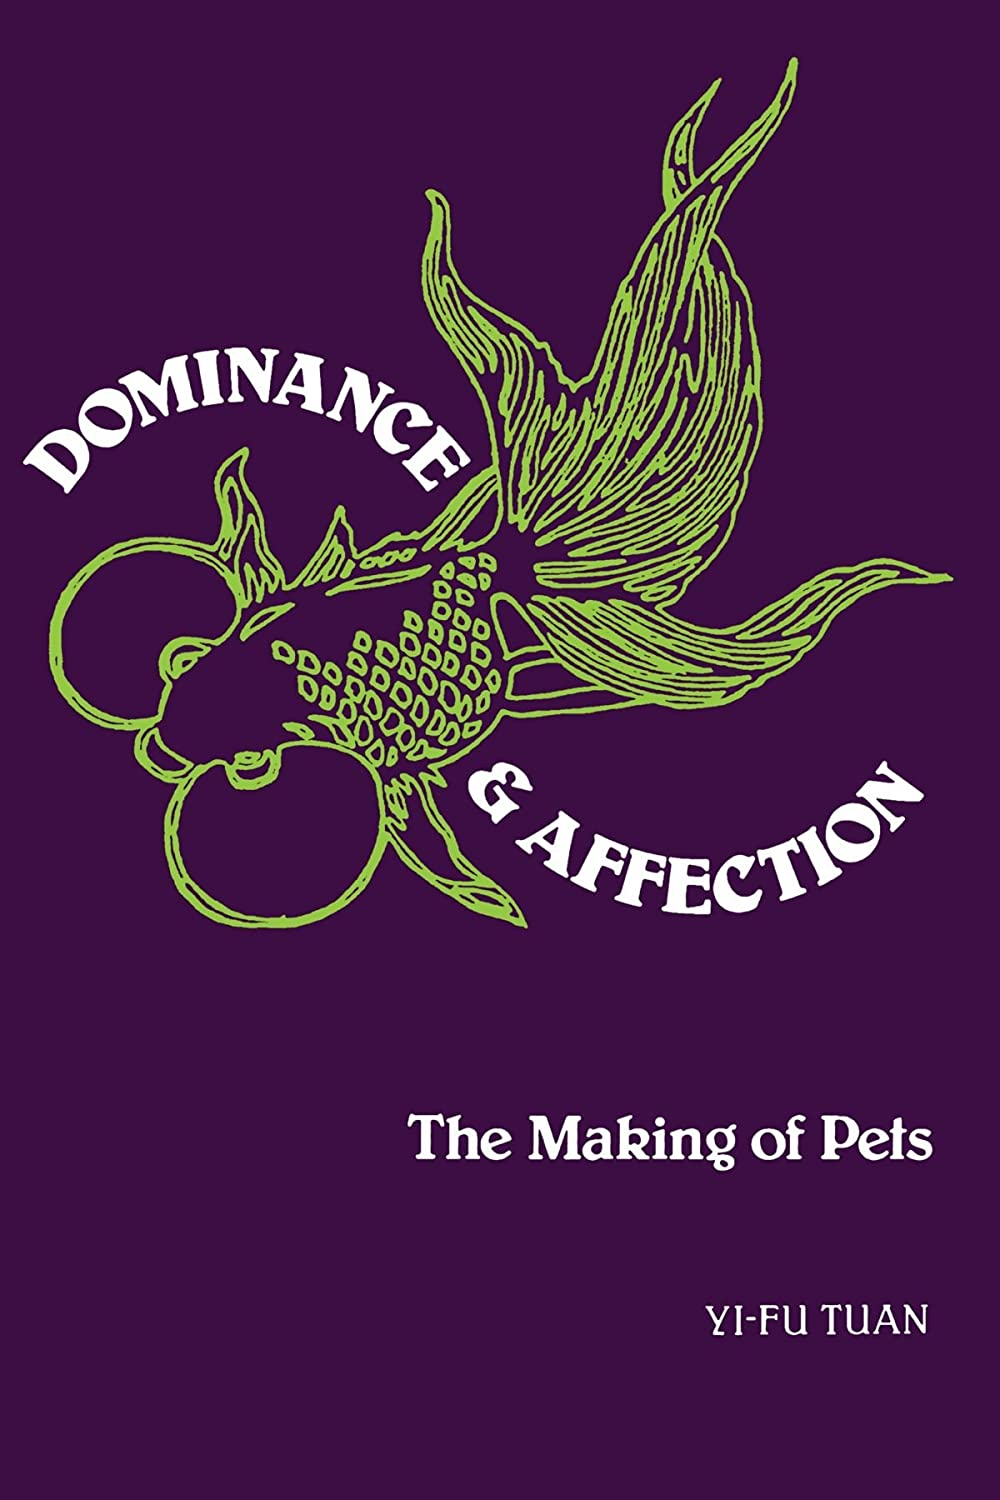 Dominance and Affection: The Making of Pets Yi-fu Tuan